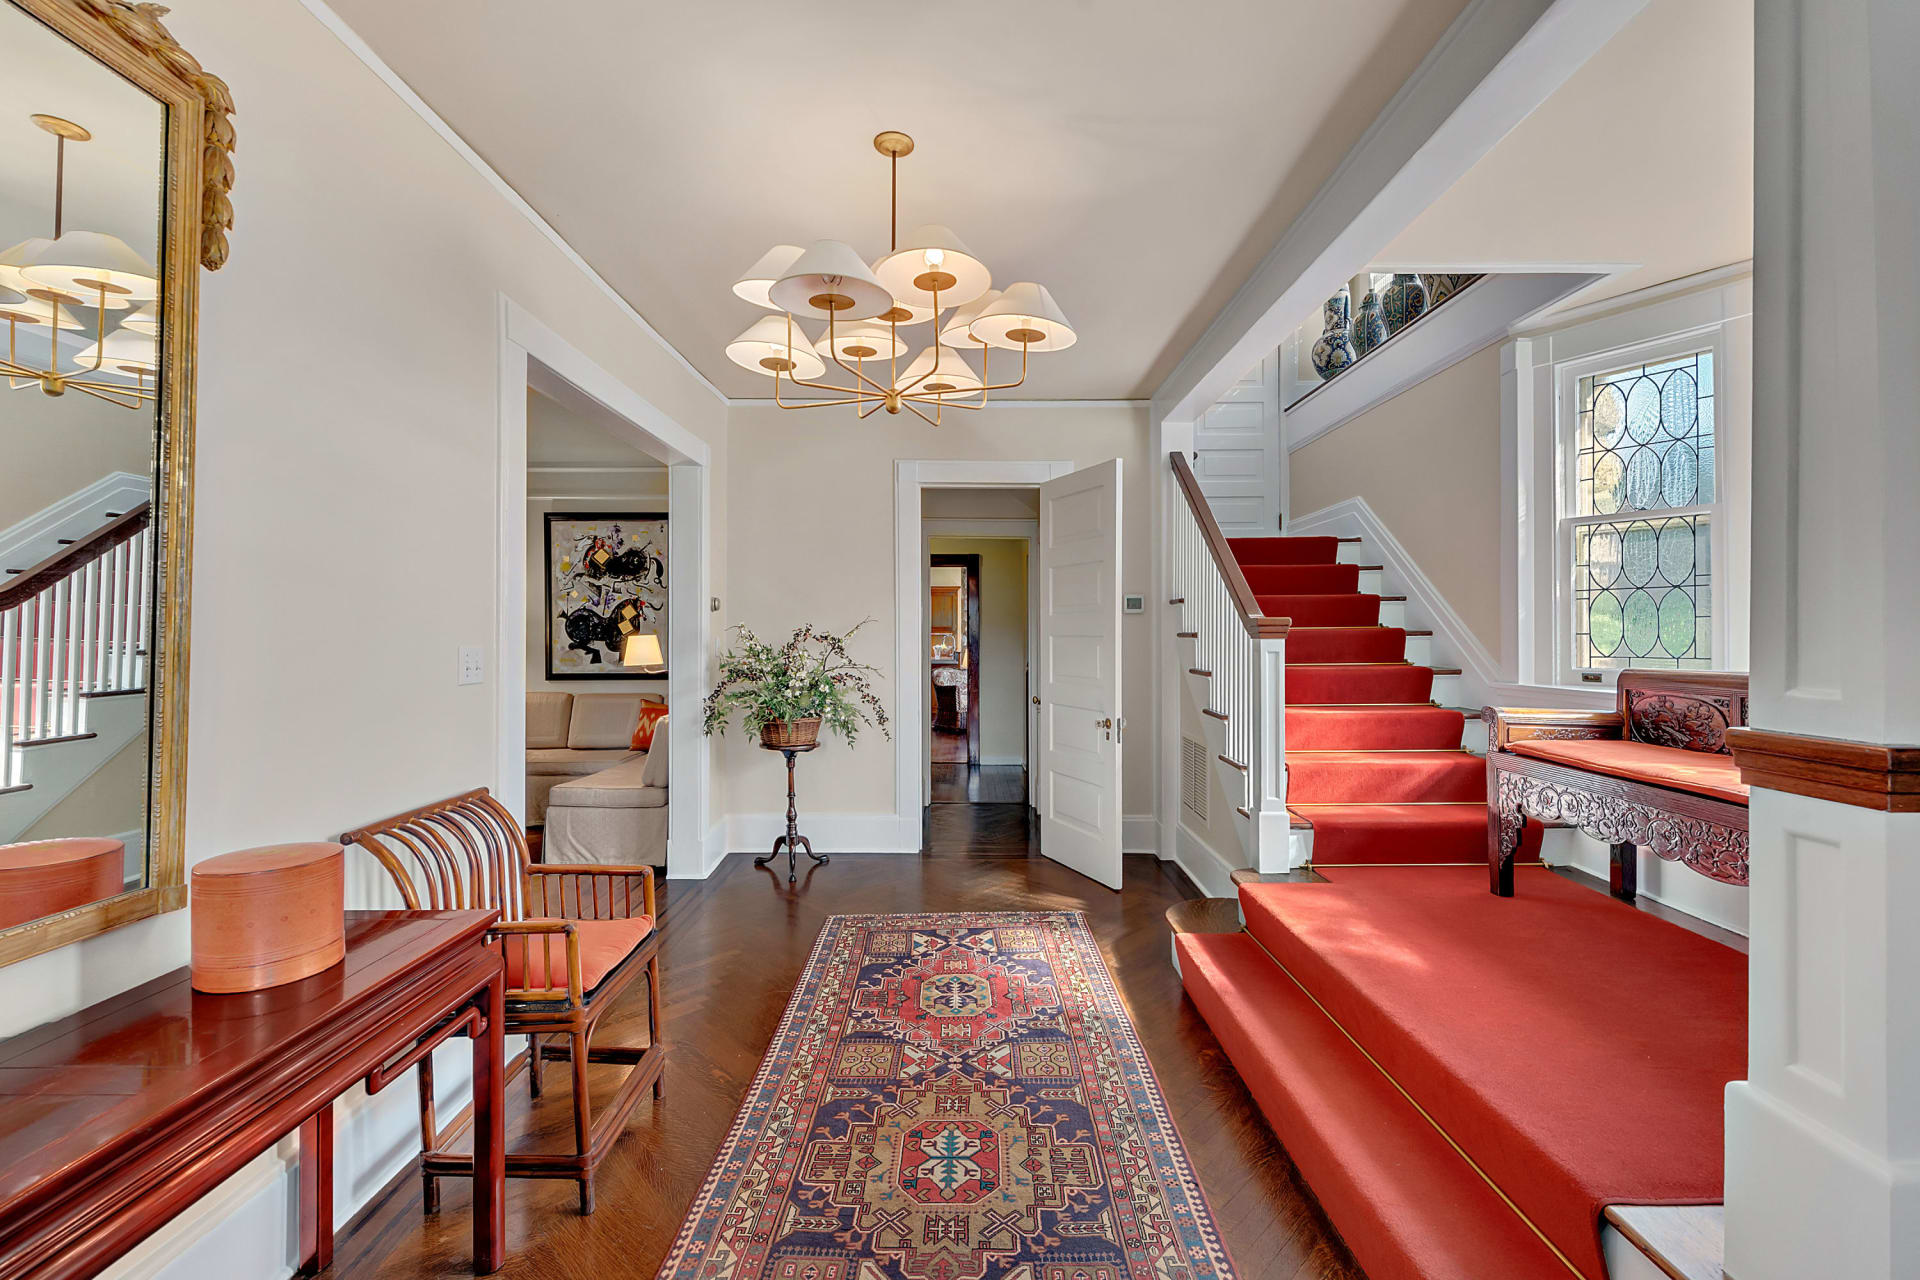 """3 Fairfield Road Greenwich Time Article: """"Renovated Greenwich Antique on the Market for the First Time in 20 Years"""""""